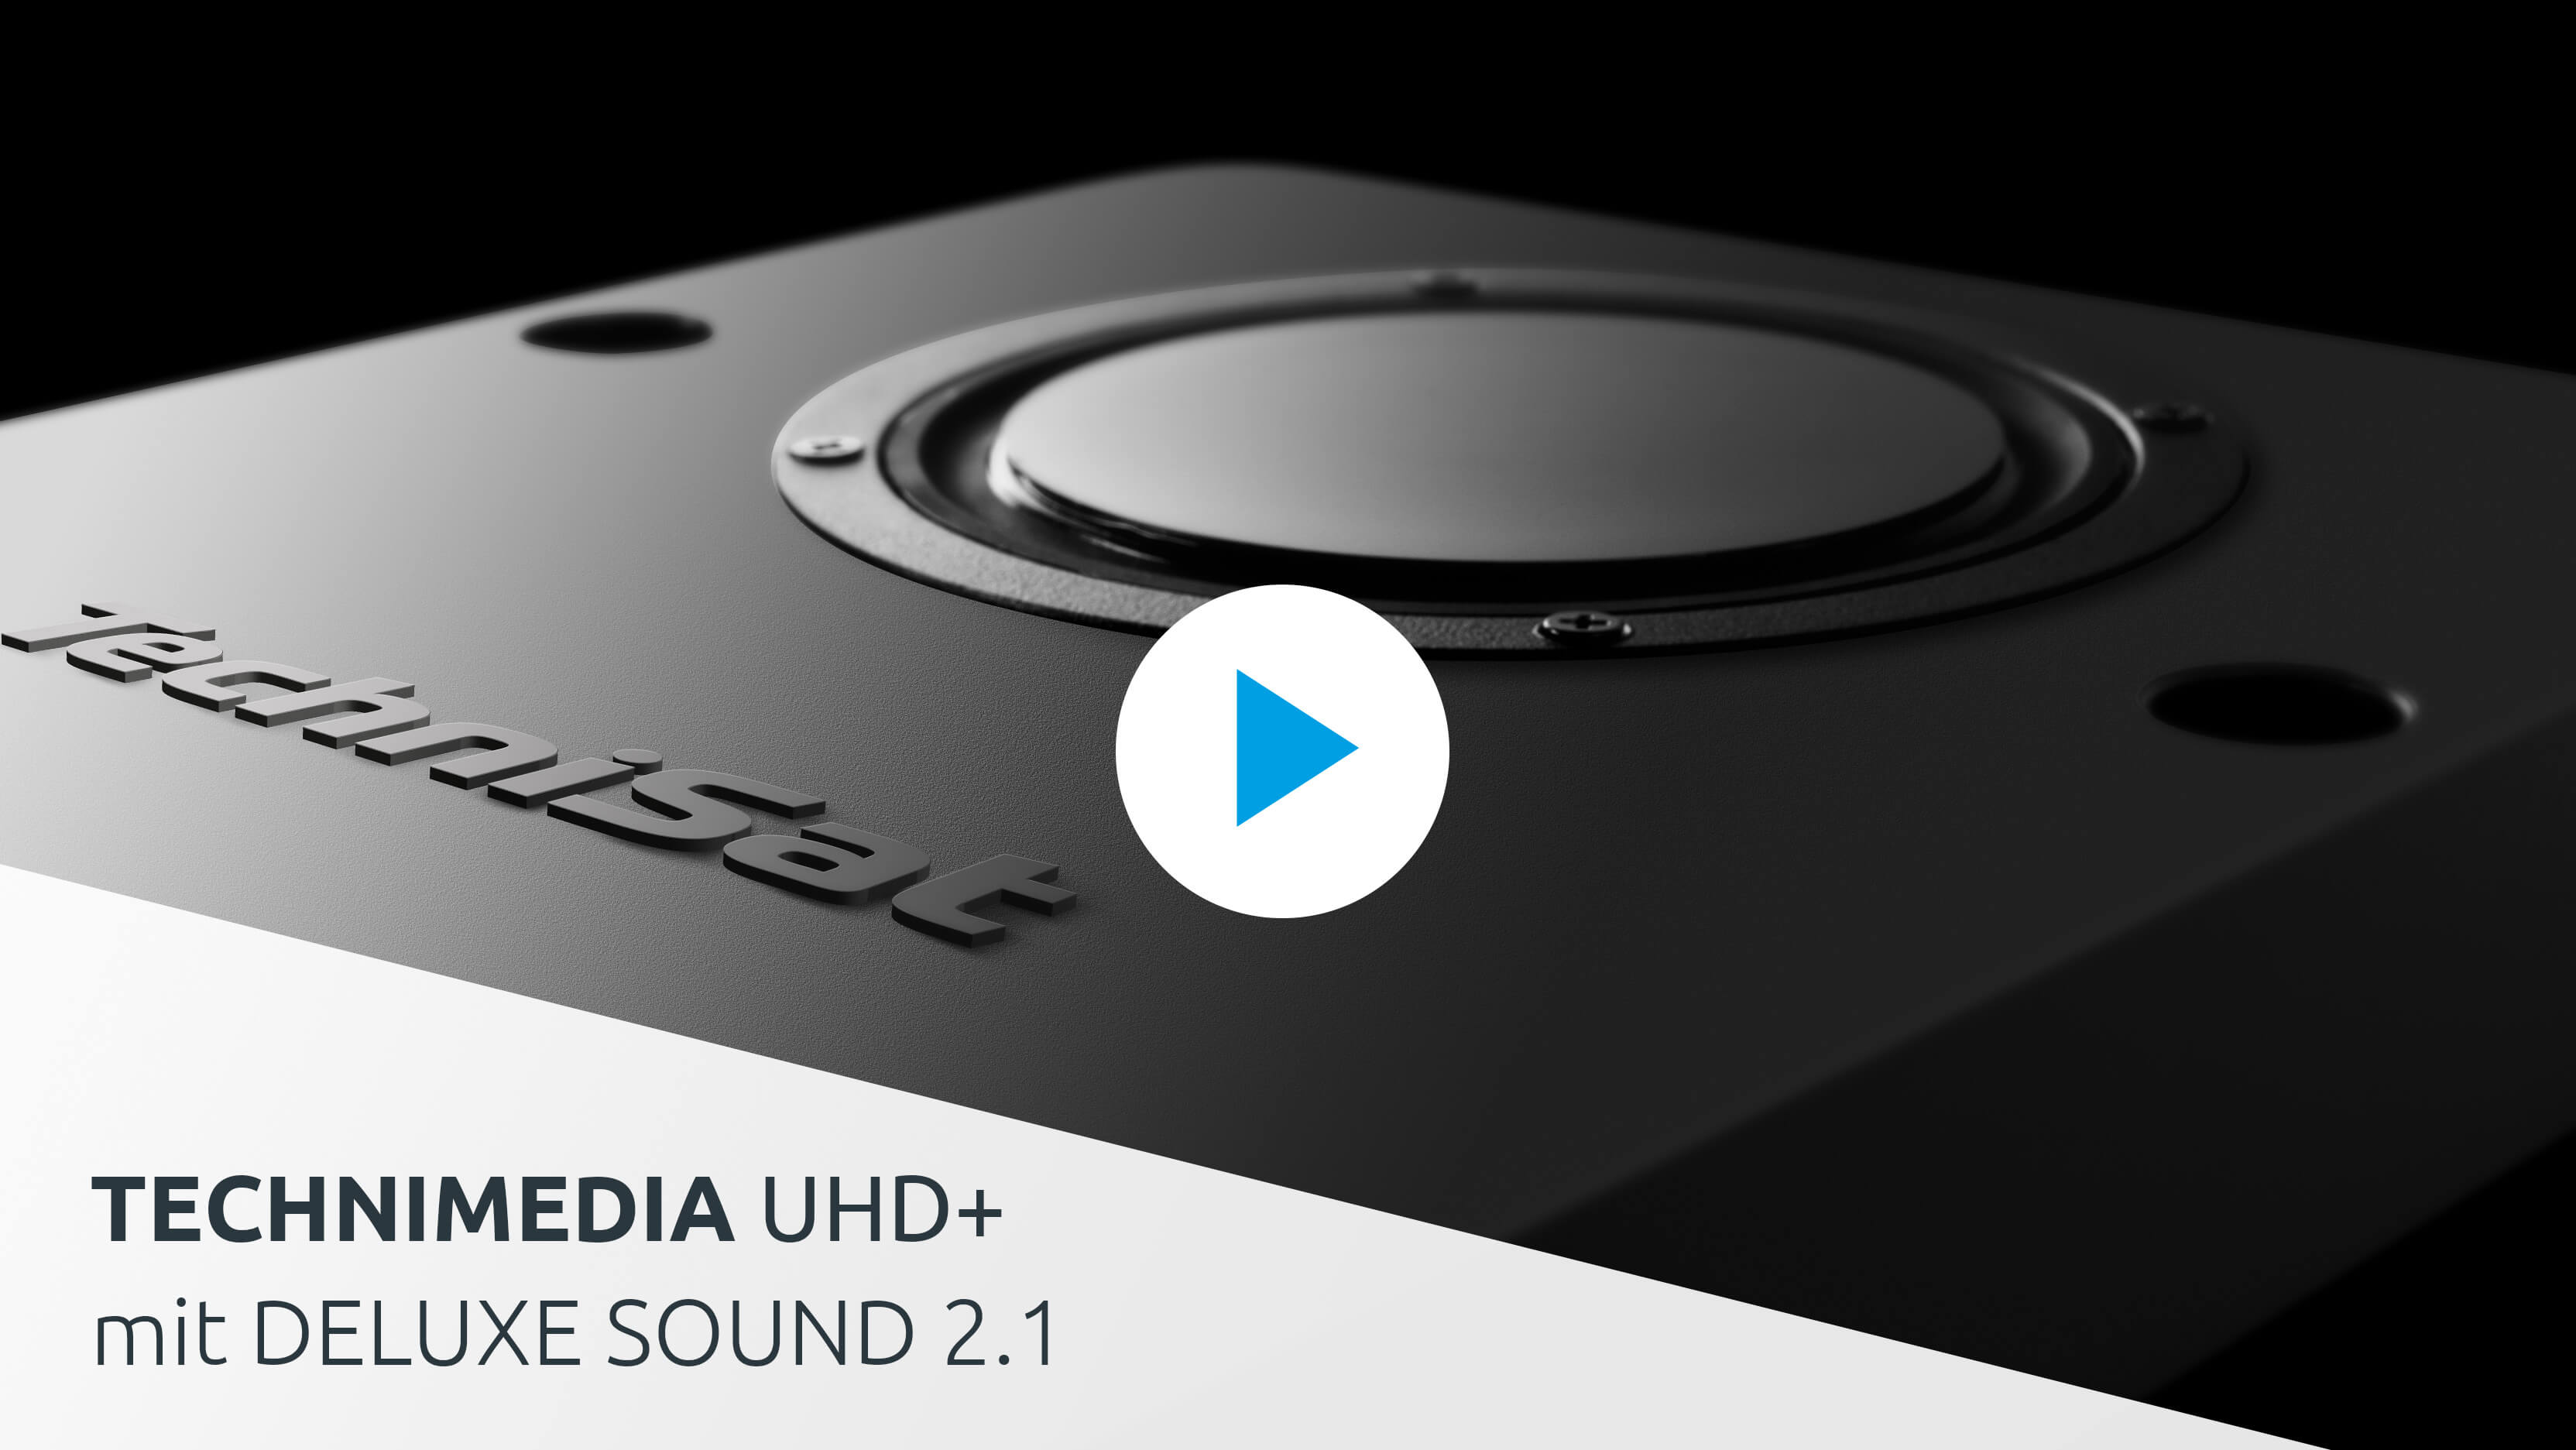 Video: TechniMedia UHD+ mit DELUXE SOUND 2.1.